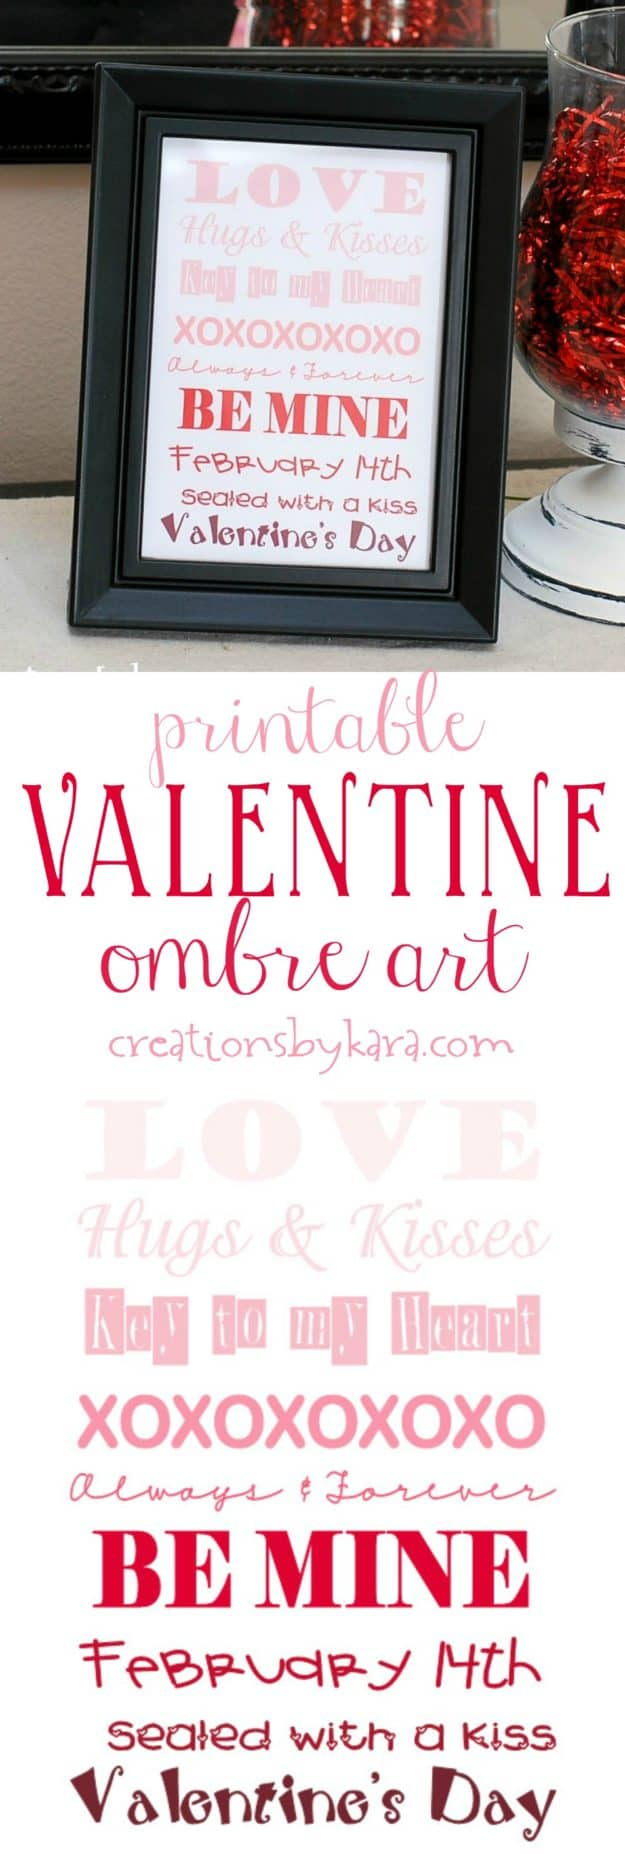 Printable Valentine's Day Ombre Art - print this art out for fast Valentine's Day decor. Free printable Valentine's Day decor